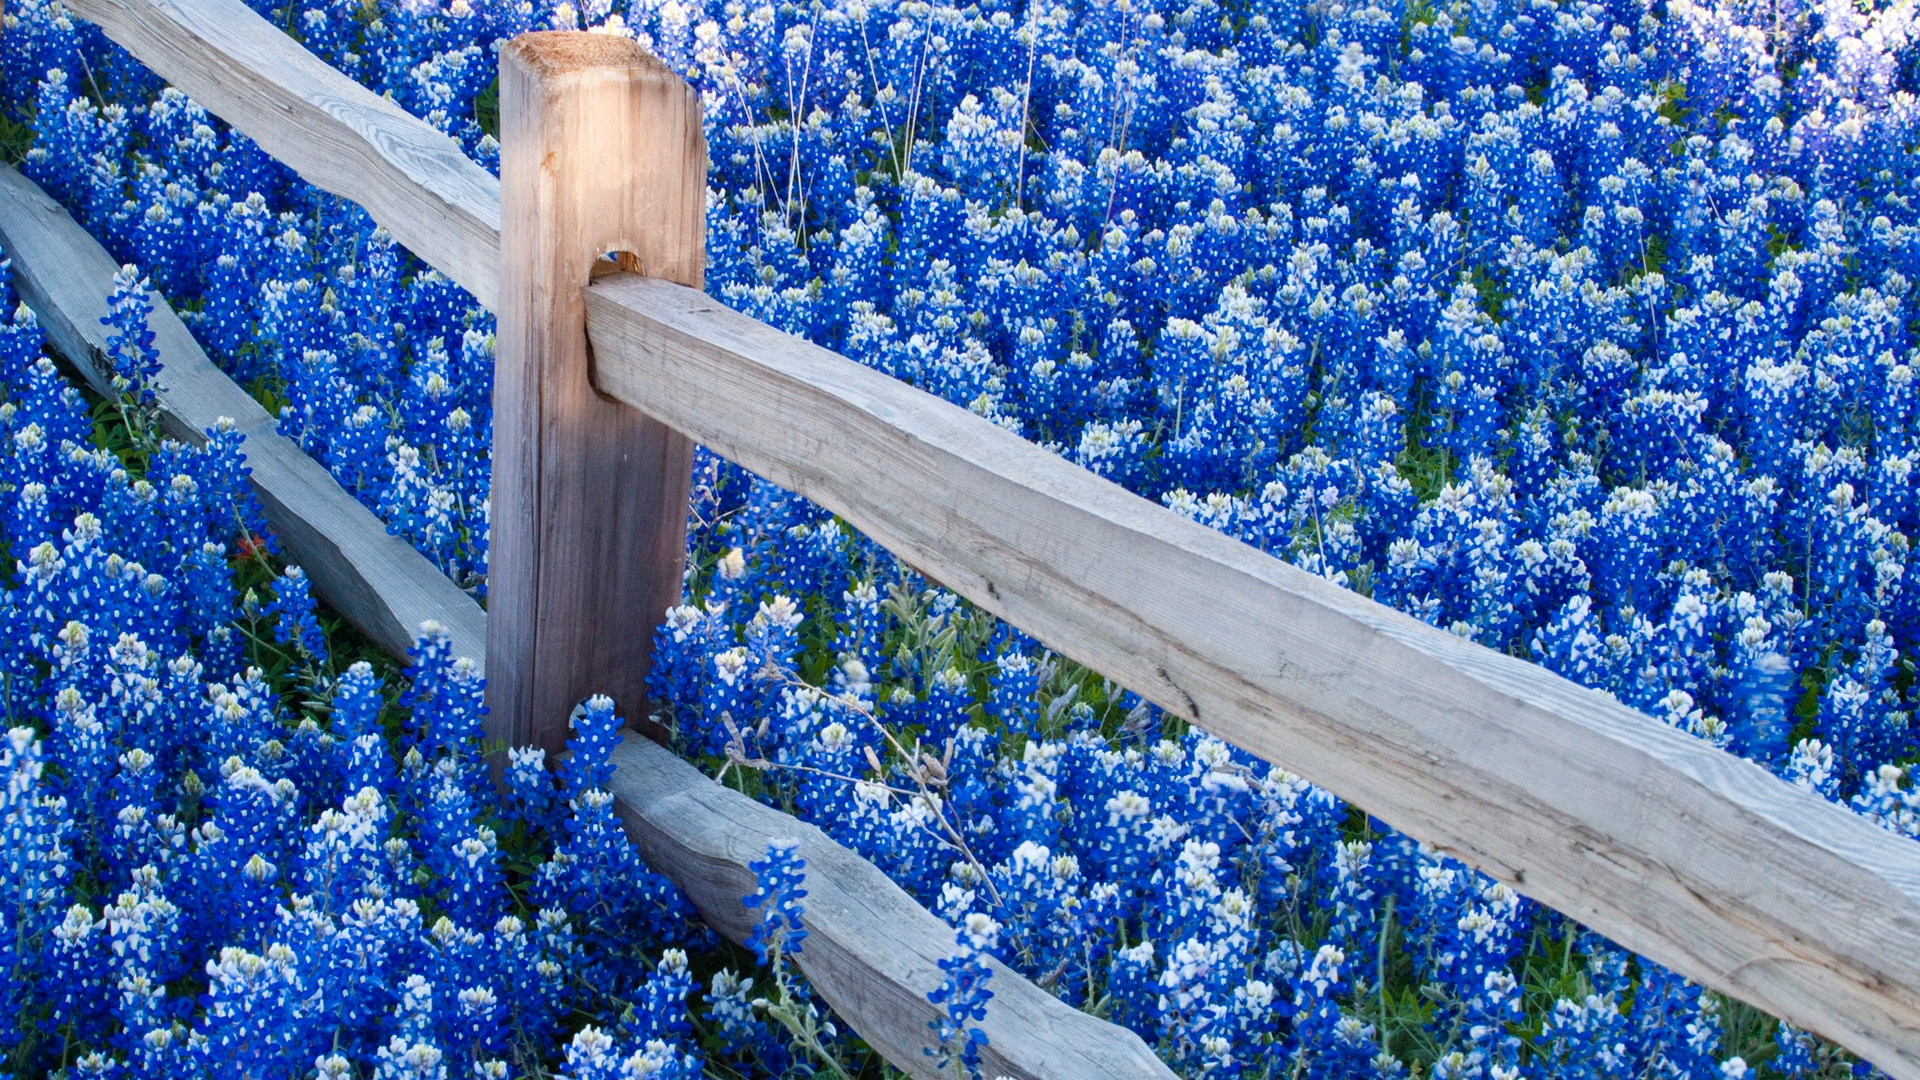 Texas Bluebonnets Wallpaper, Background, Image